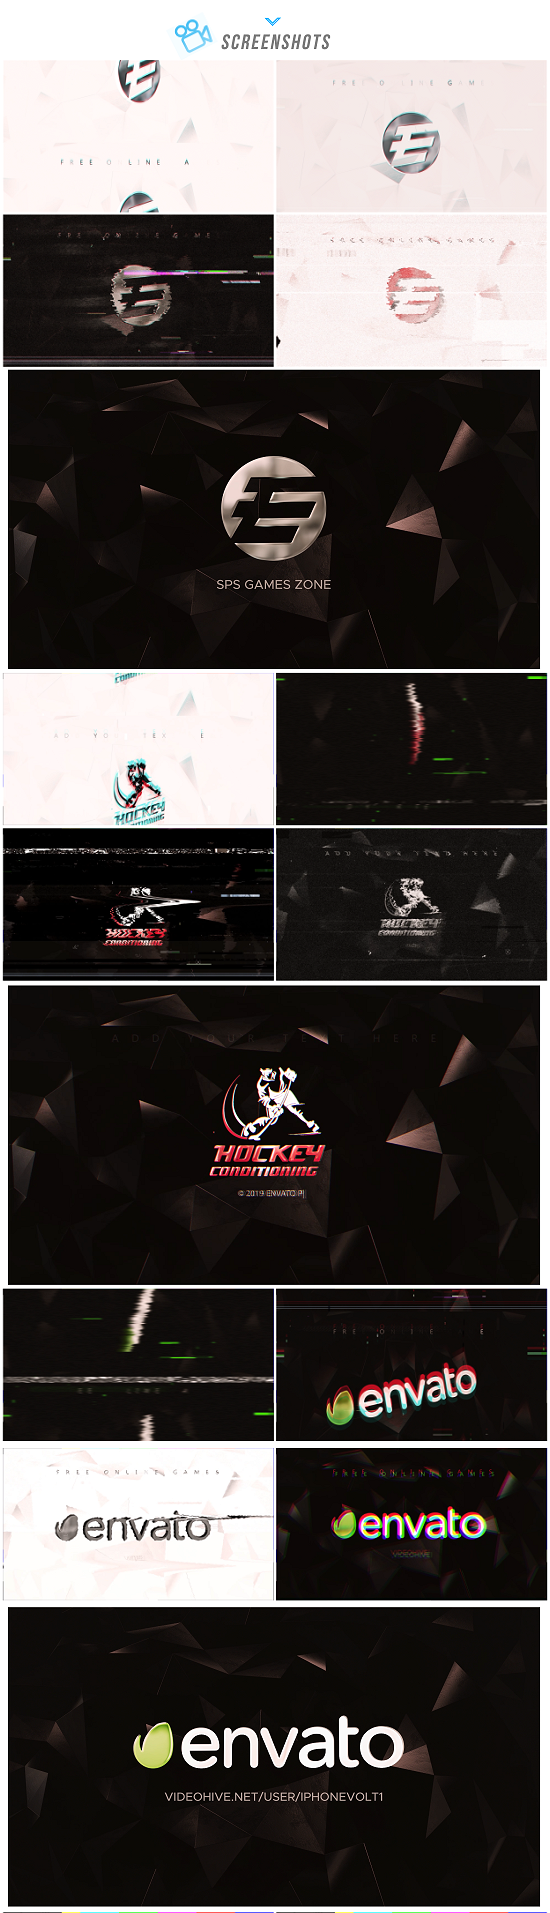 VIDEOHIVE GLITCH LOGO 23365469 - Adobe After Effects